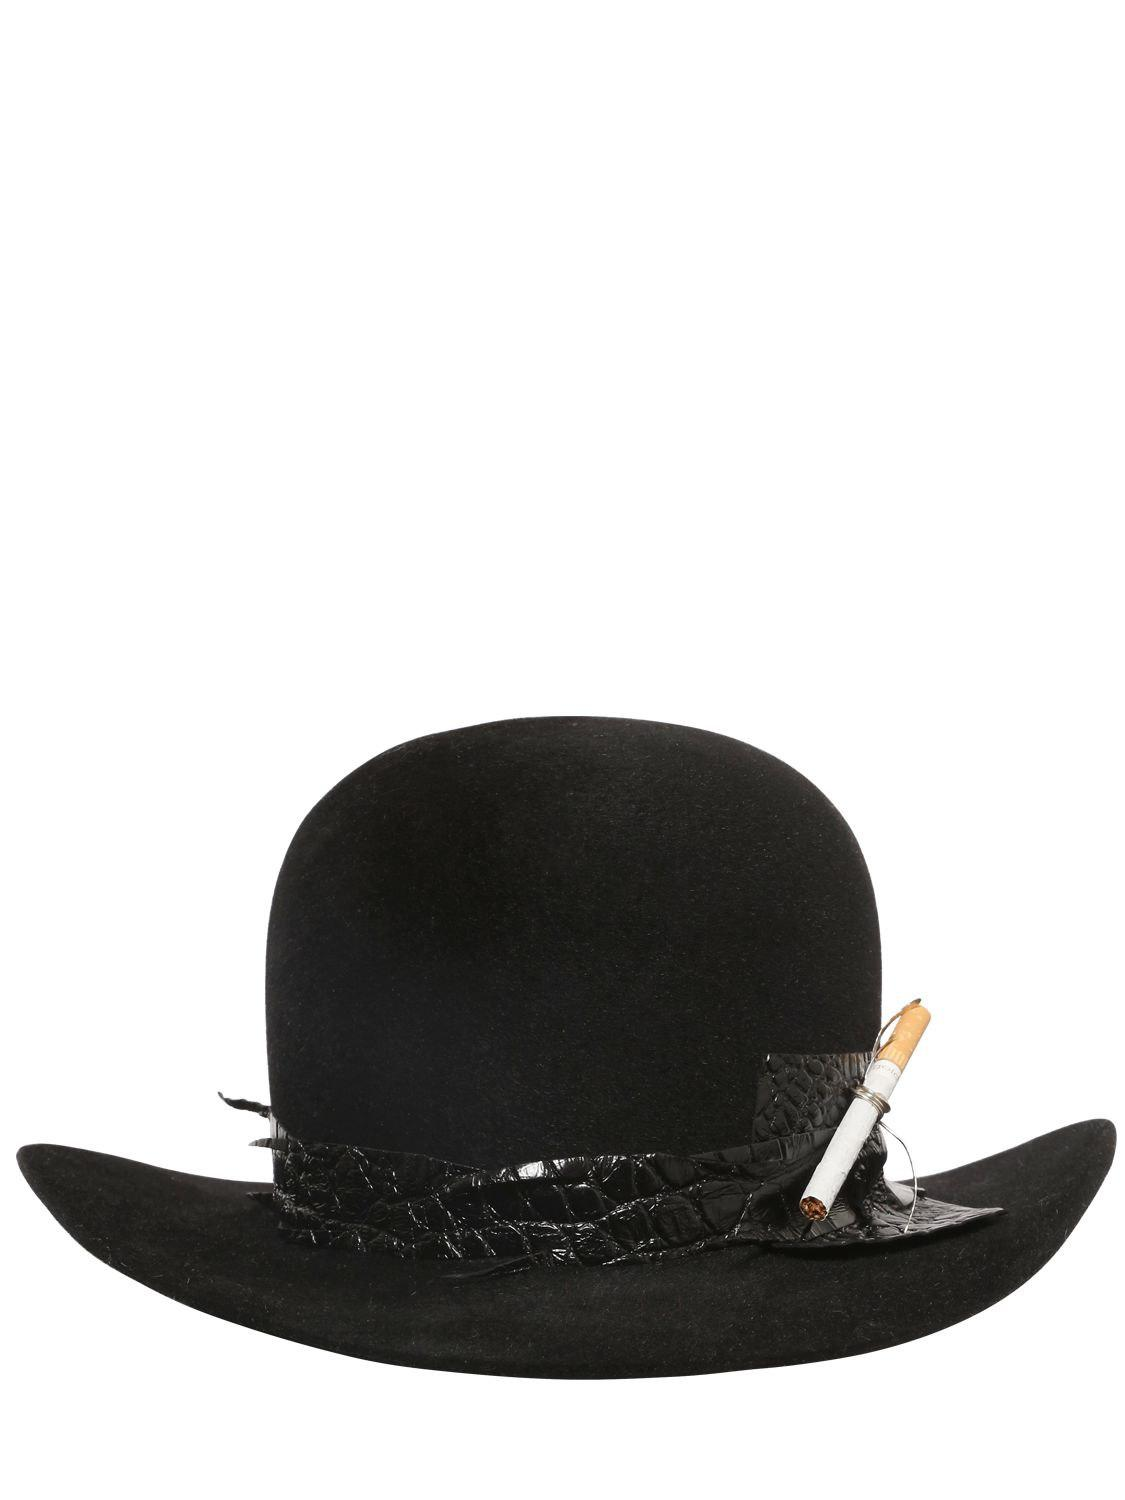 be2e57fa9d46ed Move - Black Fur Felt Bowler Hat W/ Cigarette Holder for Men - Lyst. View  fullscreen